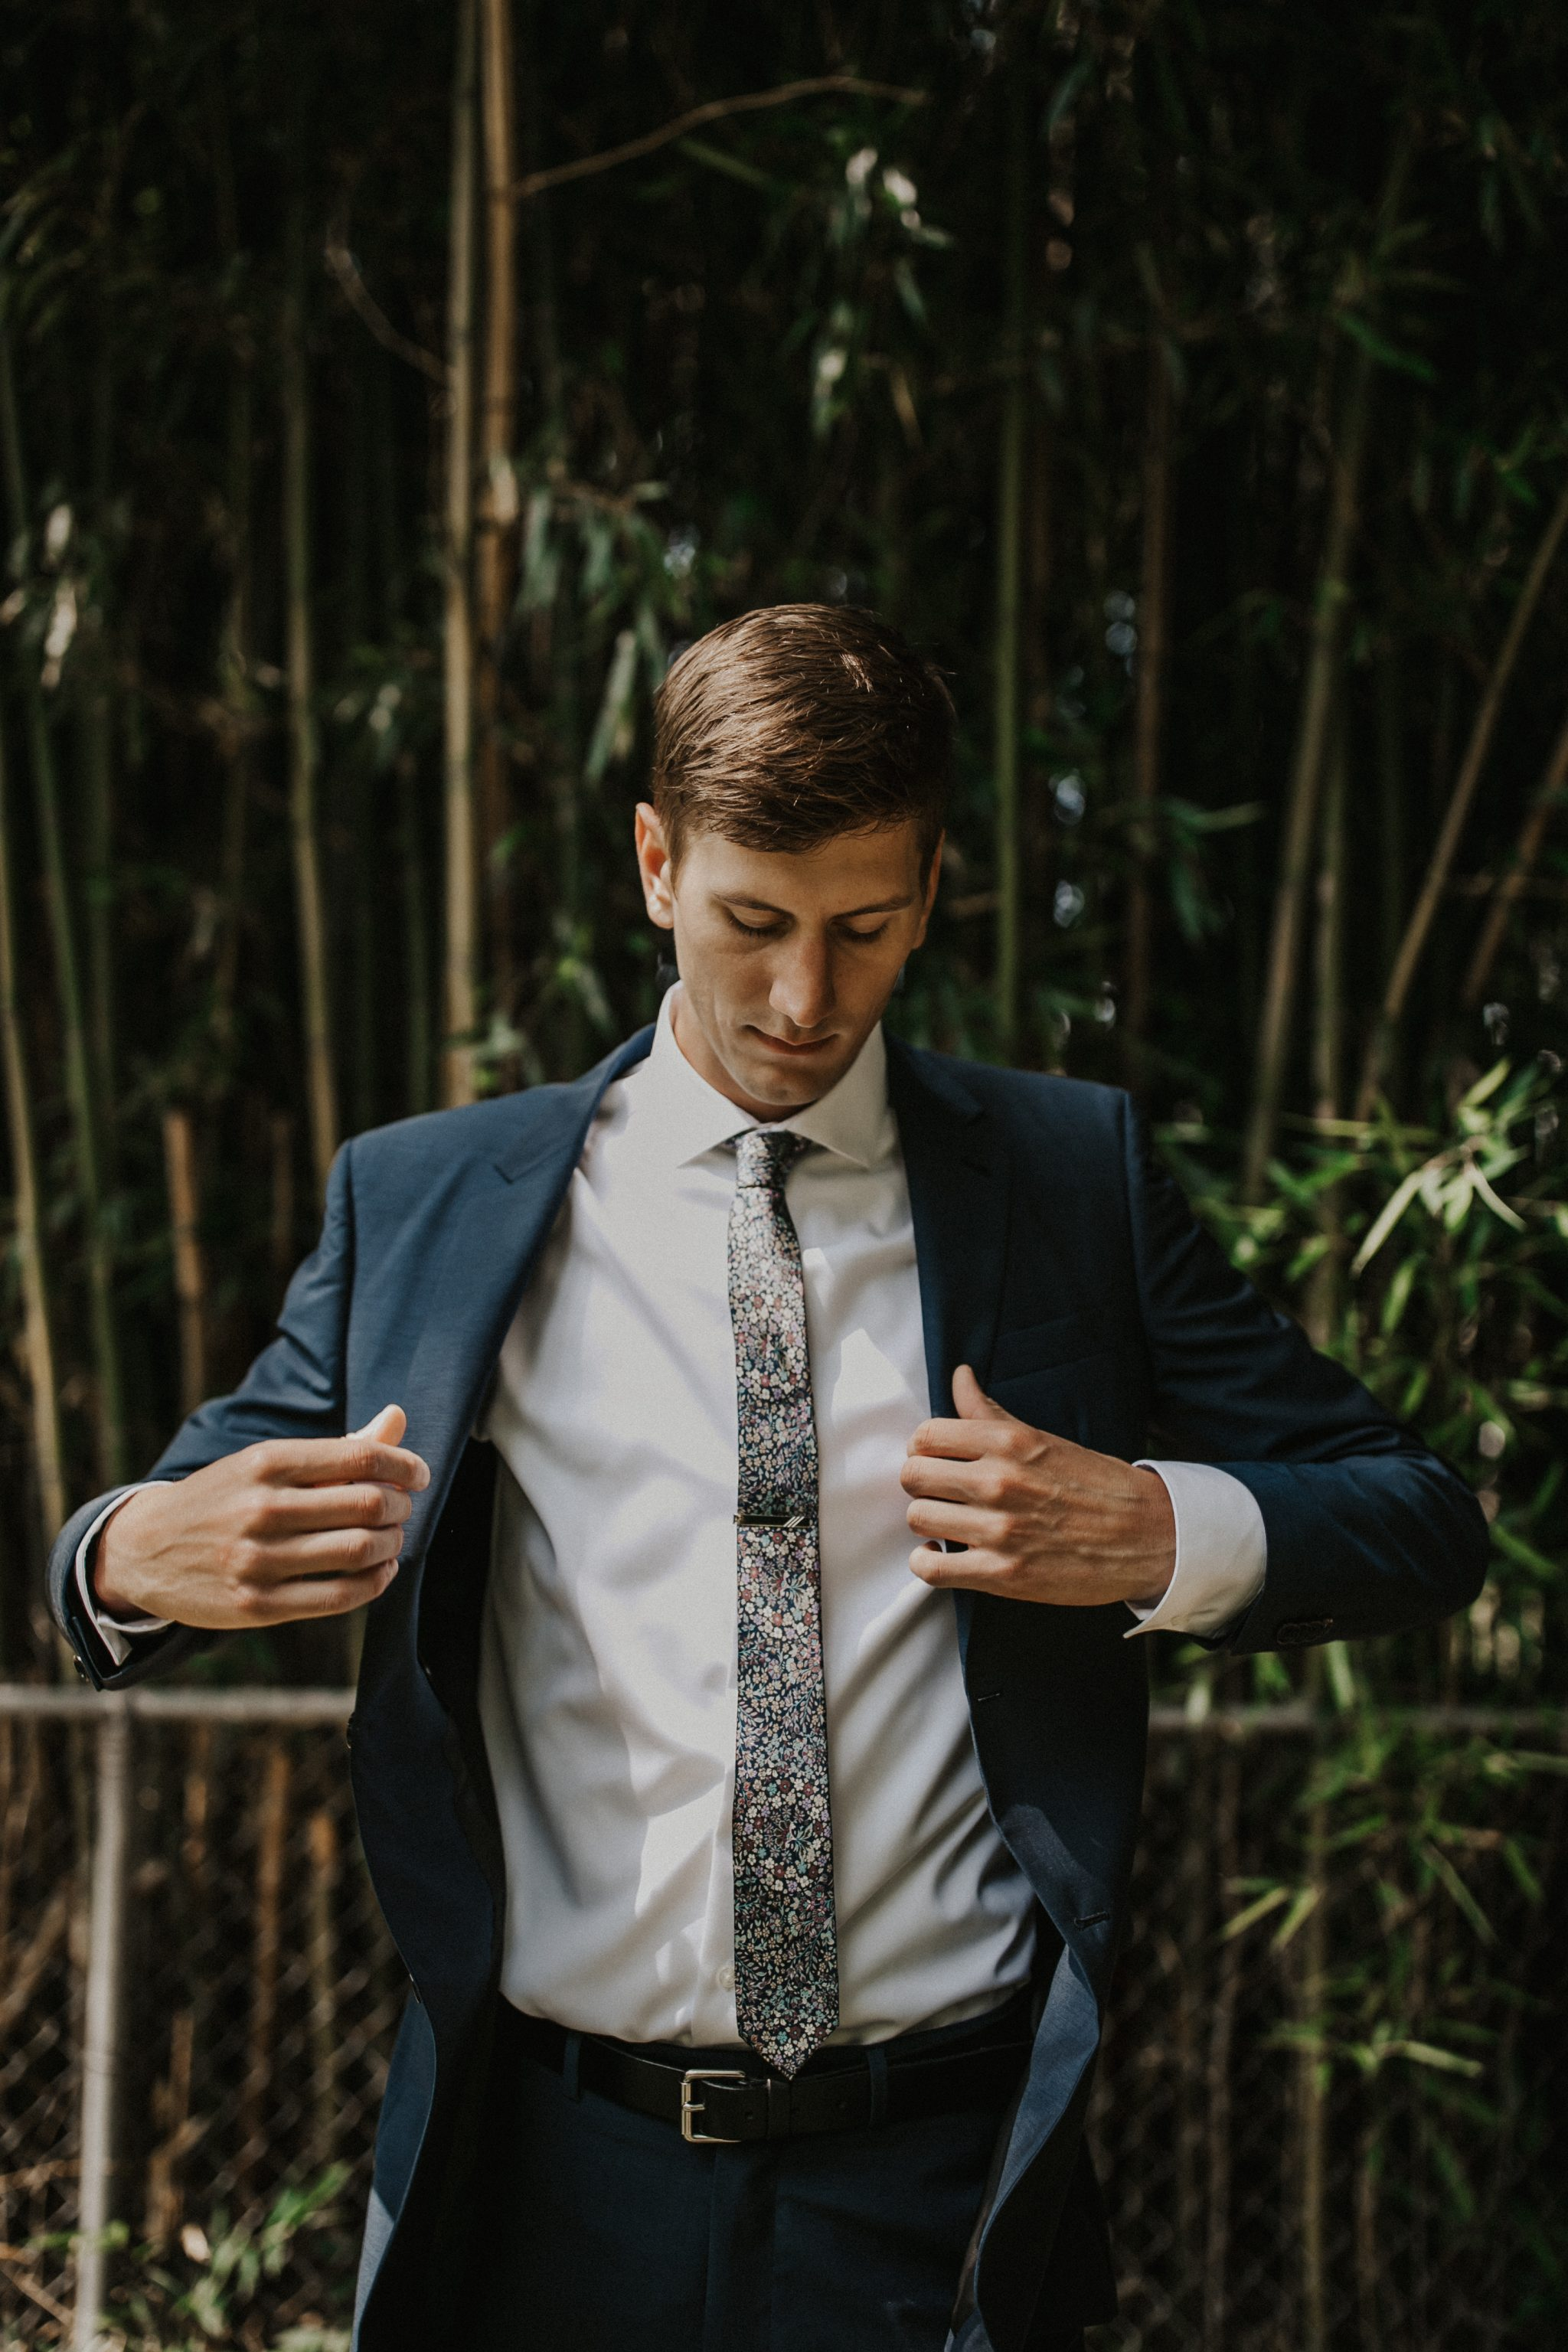 Southern groom puts on navy, custom jacket by Indochino in garden